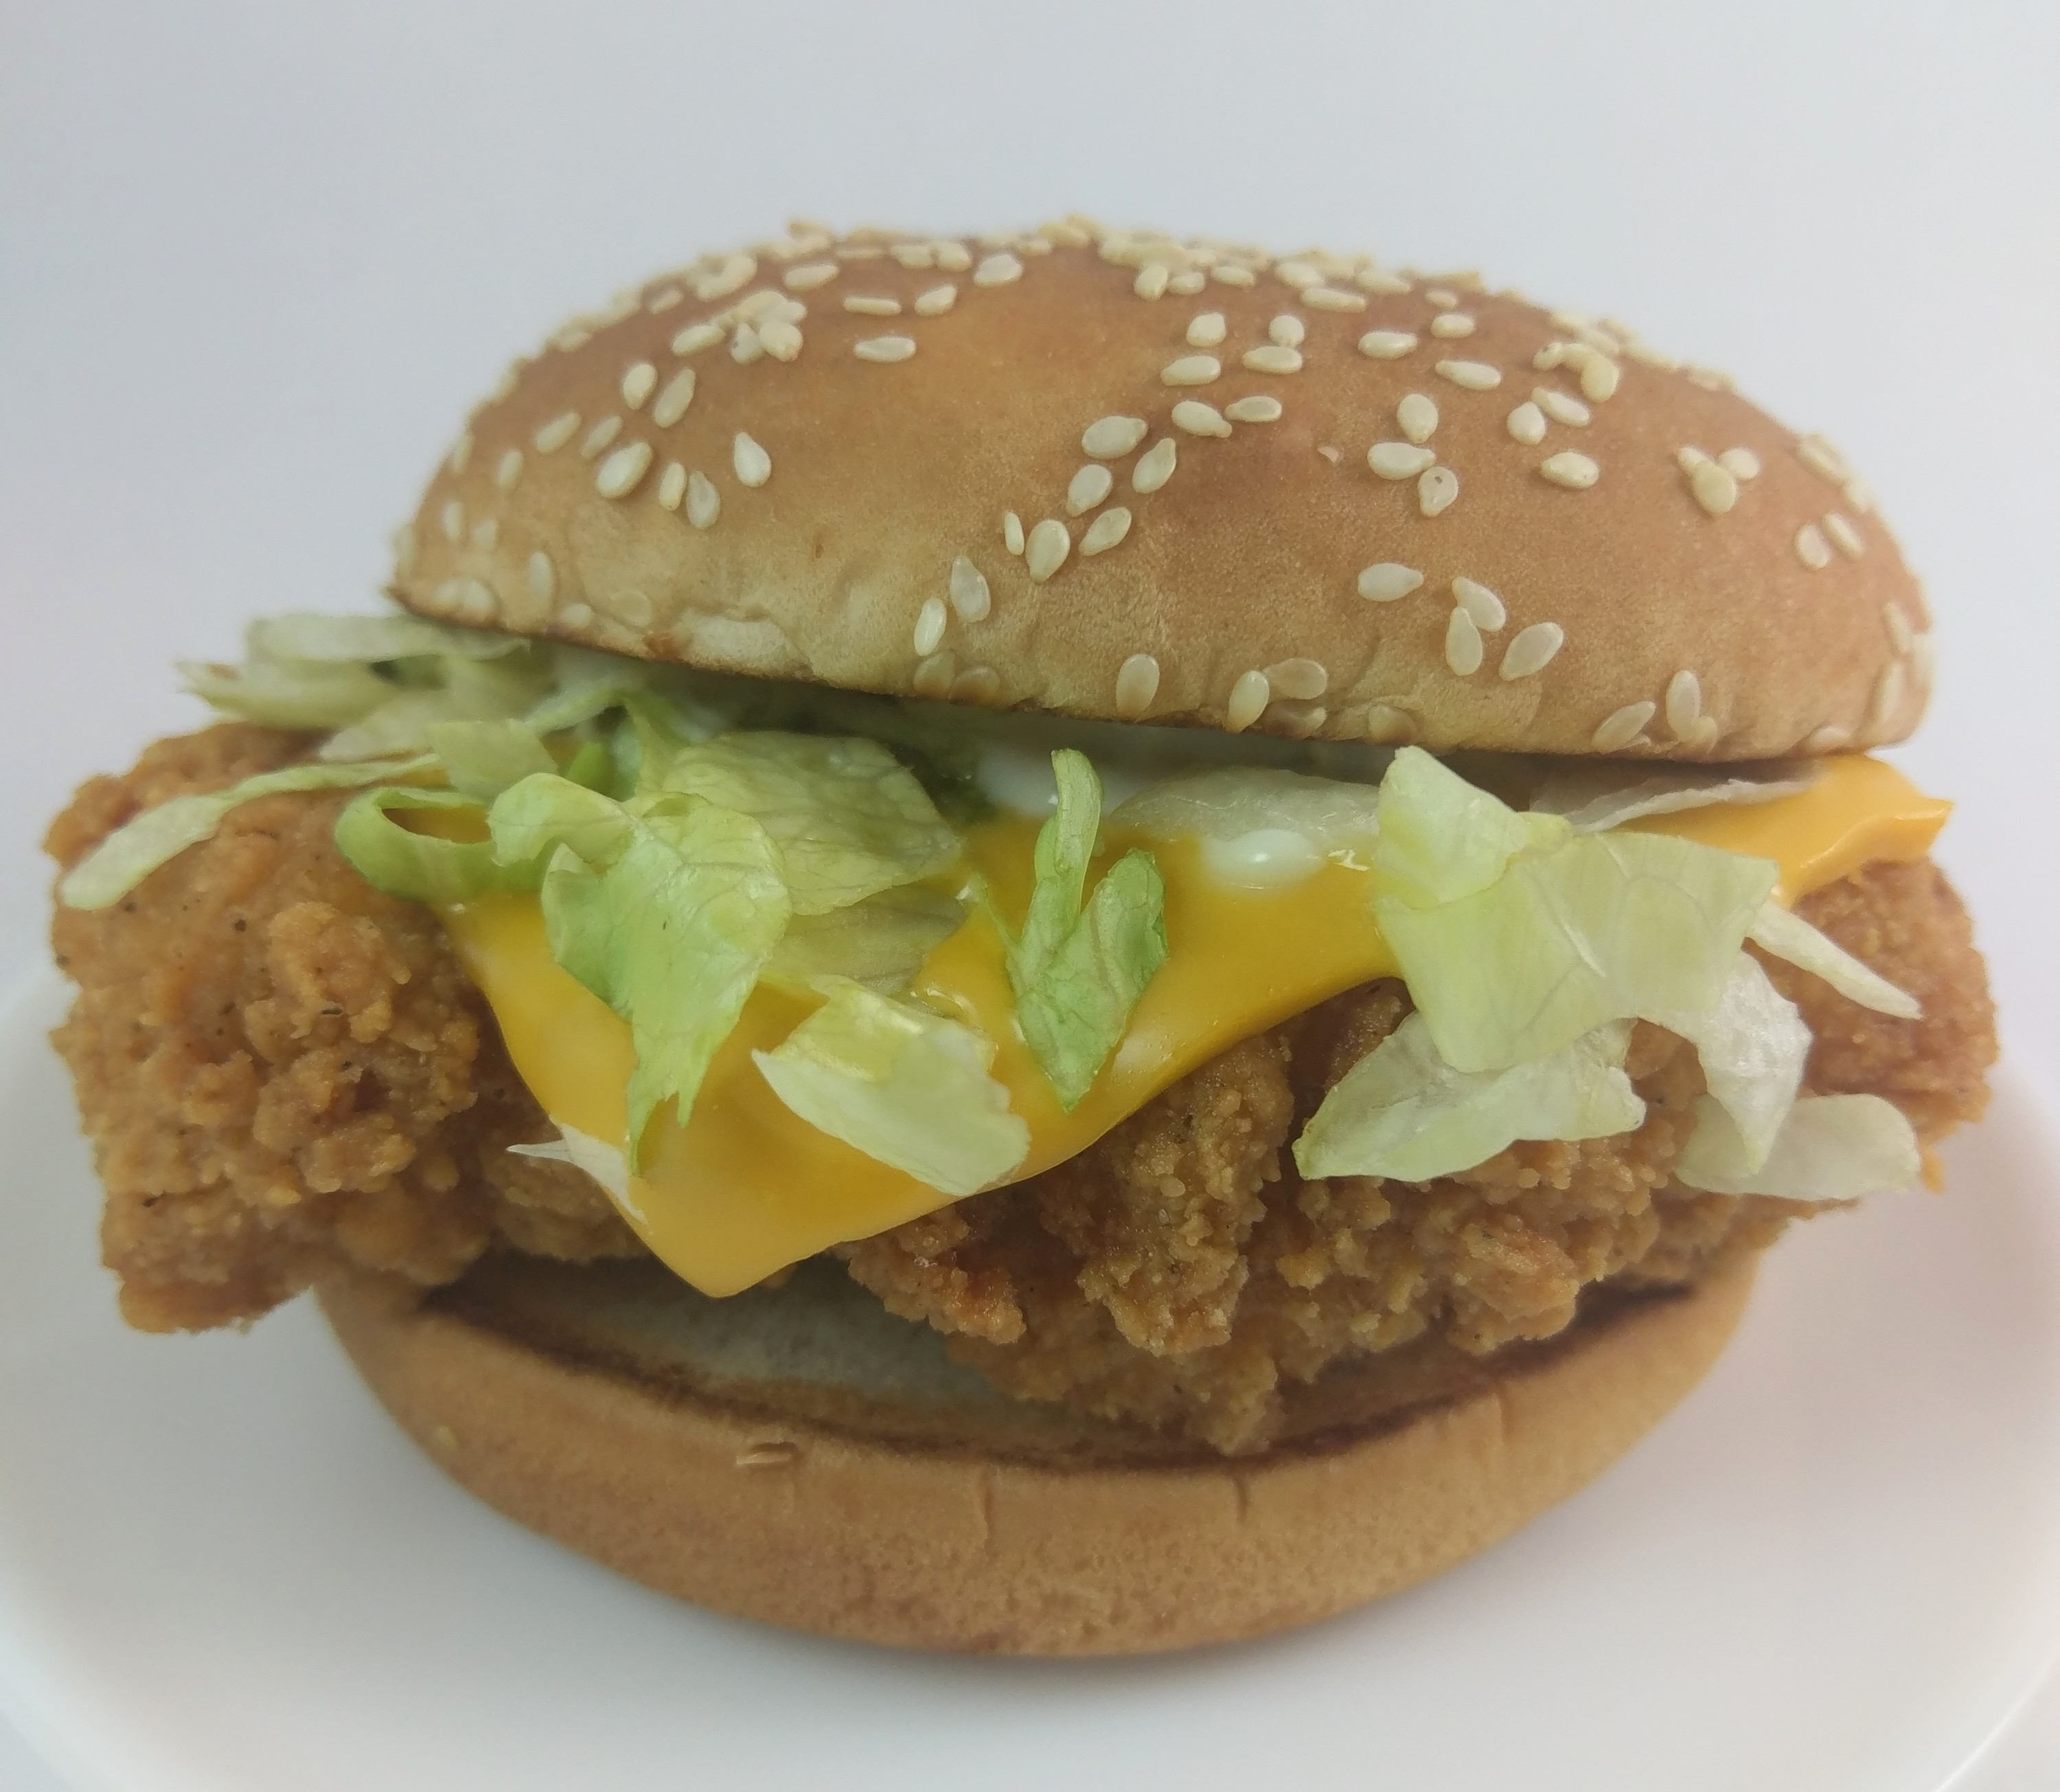 McSpicy/McLaoSai/McDiarrhea, The Most Iconic Singaporean Burger – Food Origins